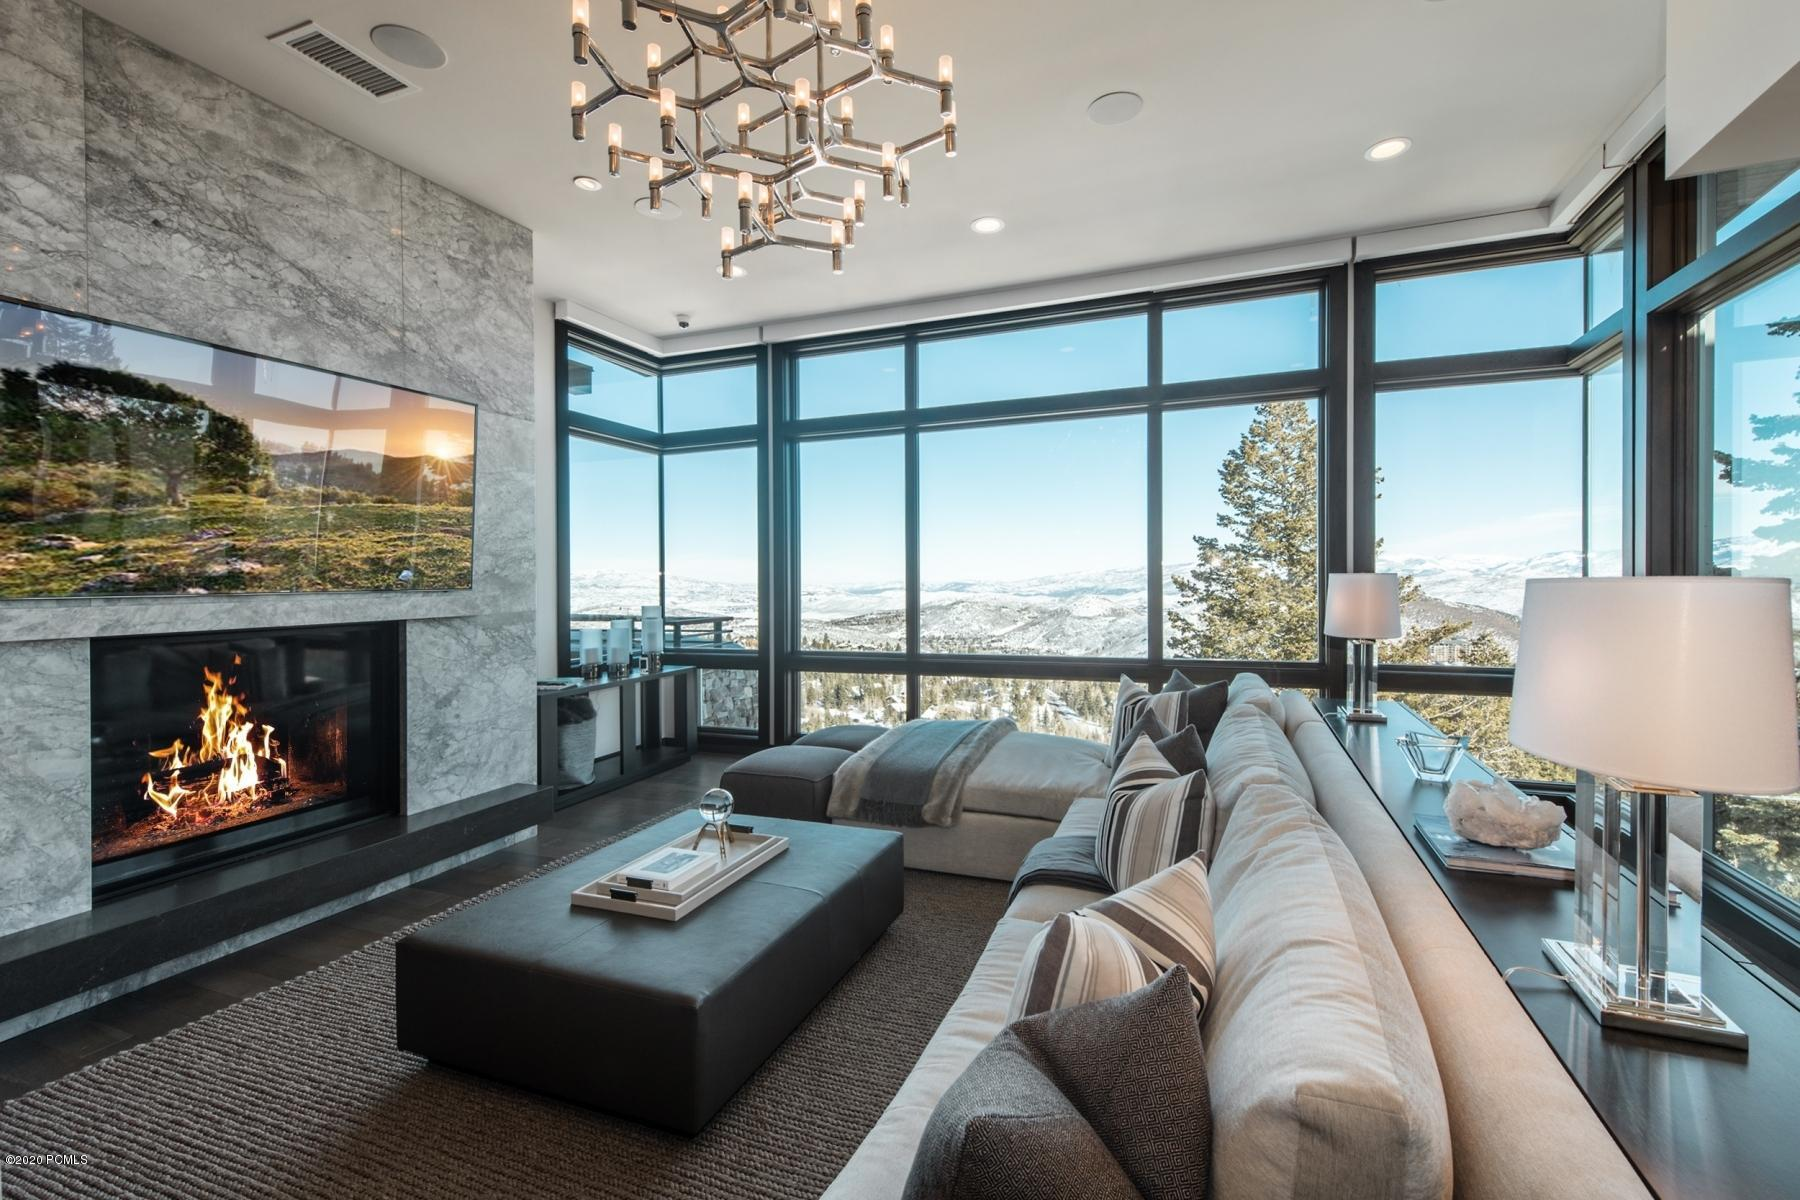 6702 Stein Circle, Park City, Utah 84060, 4 Bedrooms Bedrooms, ,5 BathroomsBathrooms,Condominium,For Sale,Stein,20190109112430415765000000